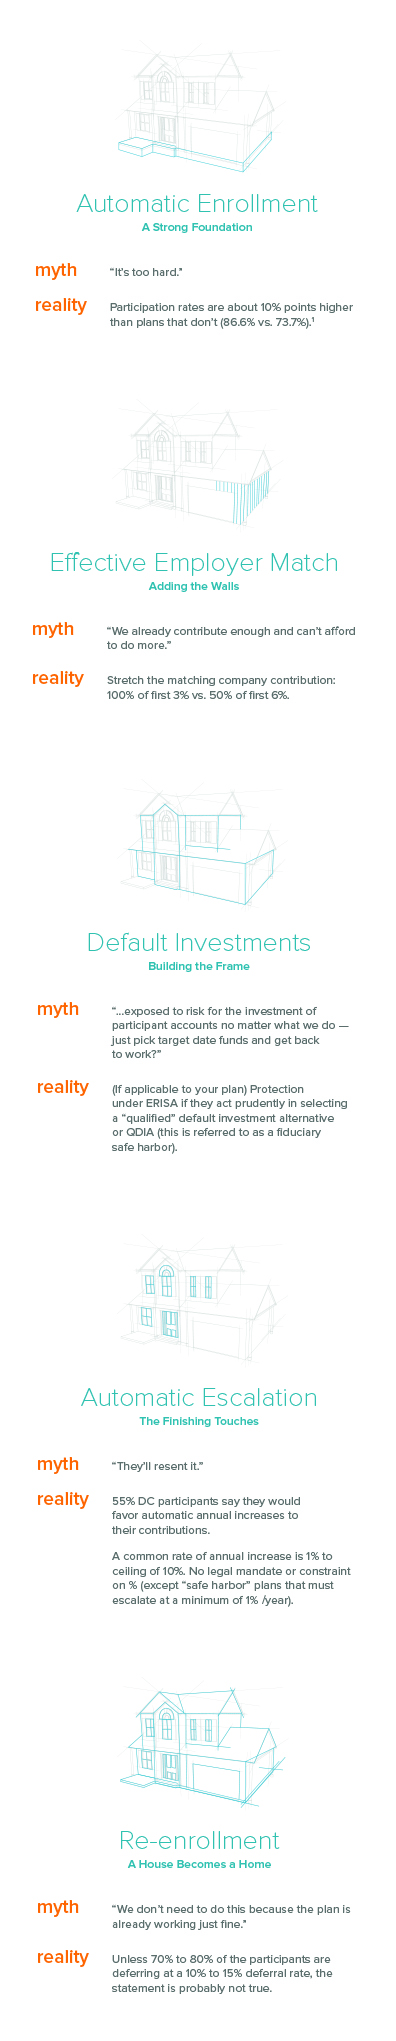 Myth vs. reality: the building blocks for a successful retirement plan